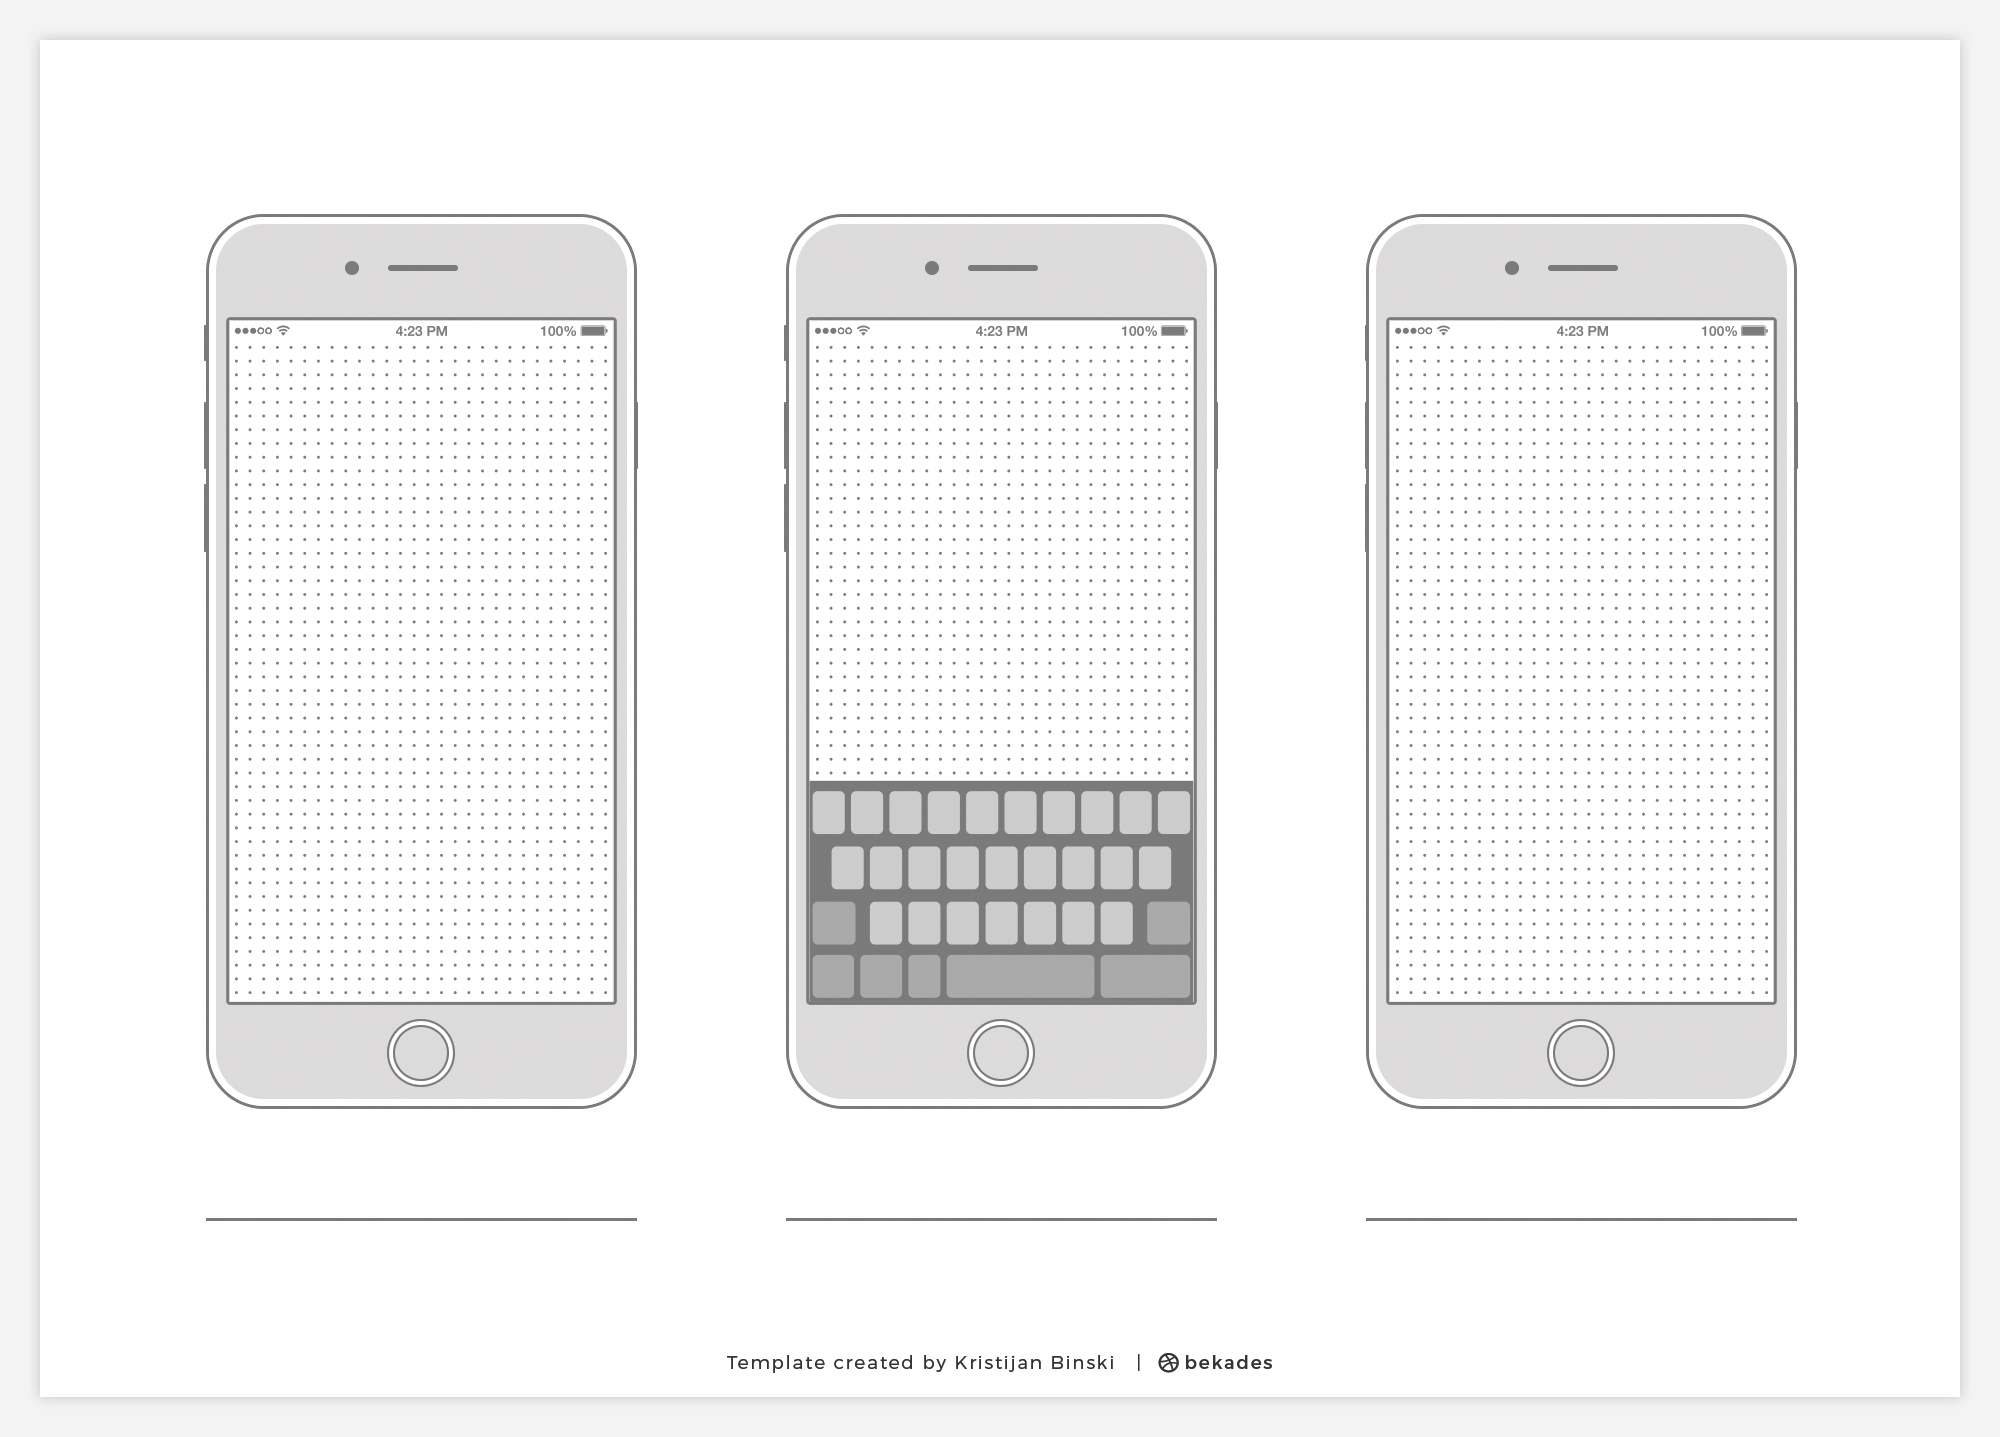 Wireframe Templates Collection - All major devices - Free Printable Resource